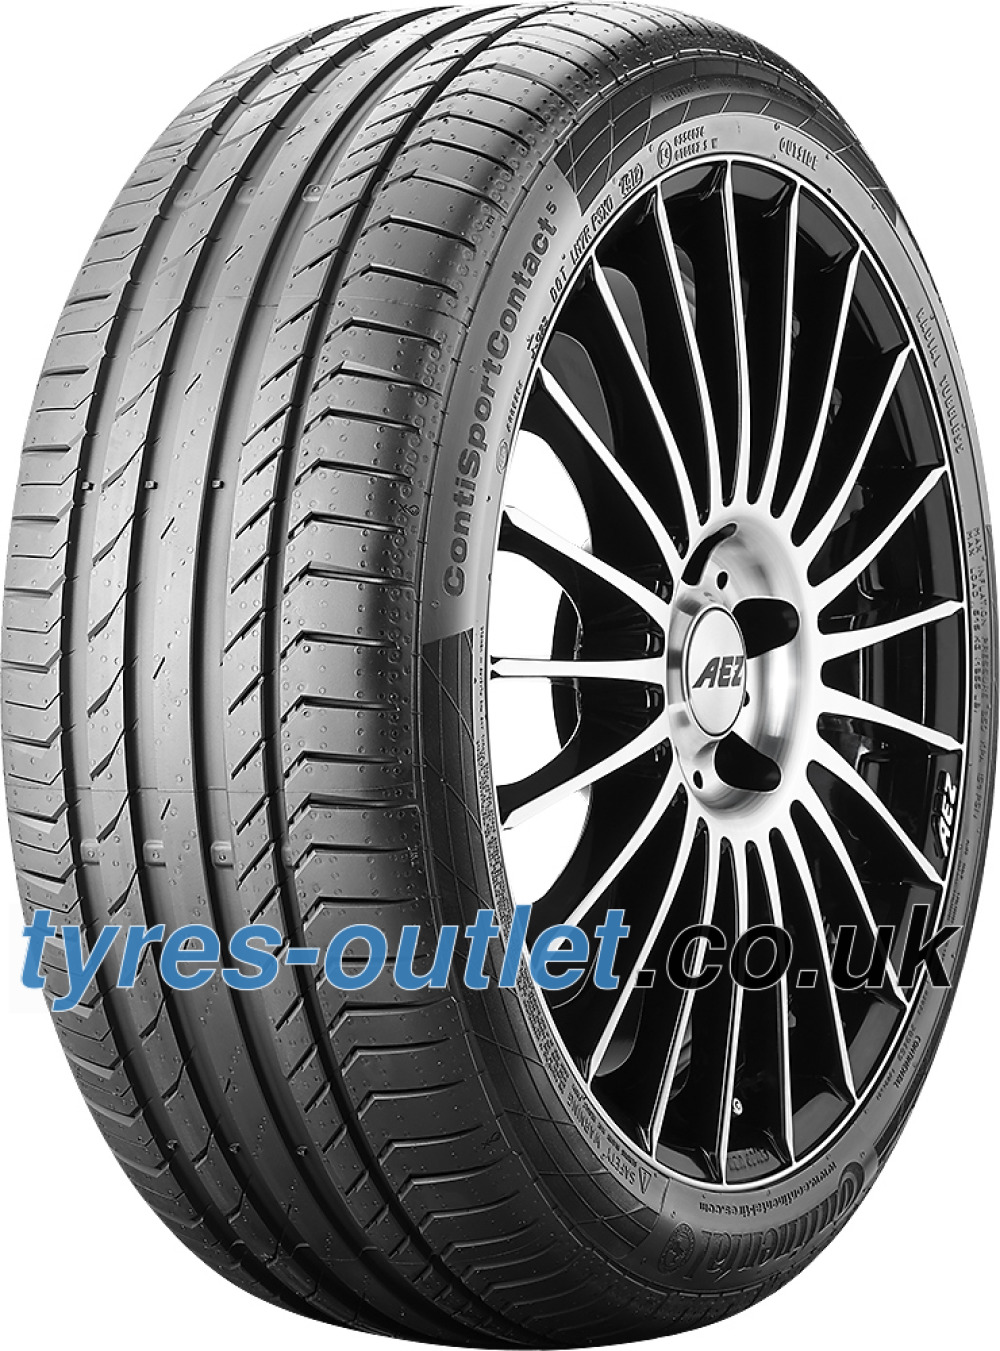 Continental ContiSportContact 5 ( 245/45 R18 96W Conti Seal, with kerbing rib )